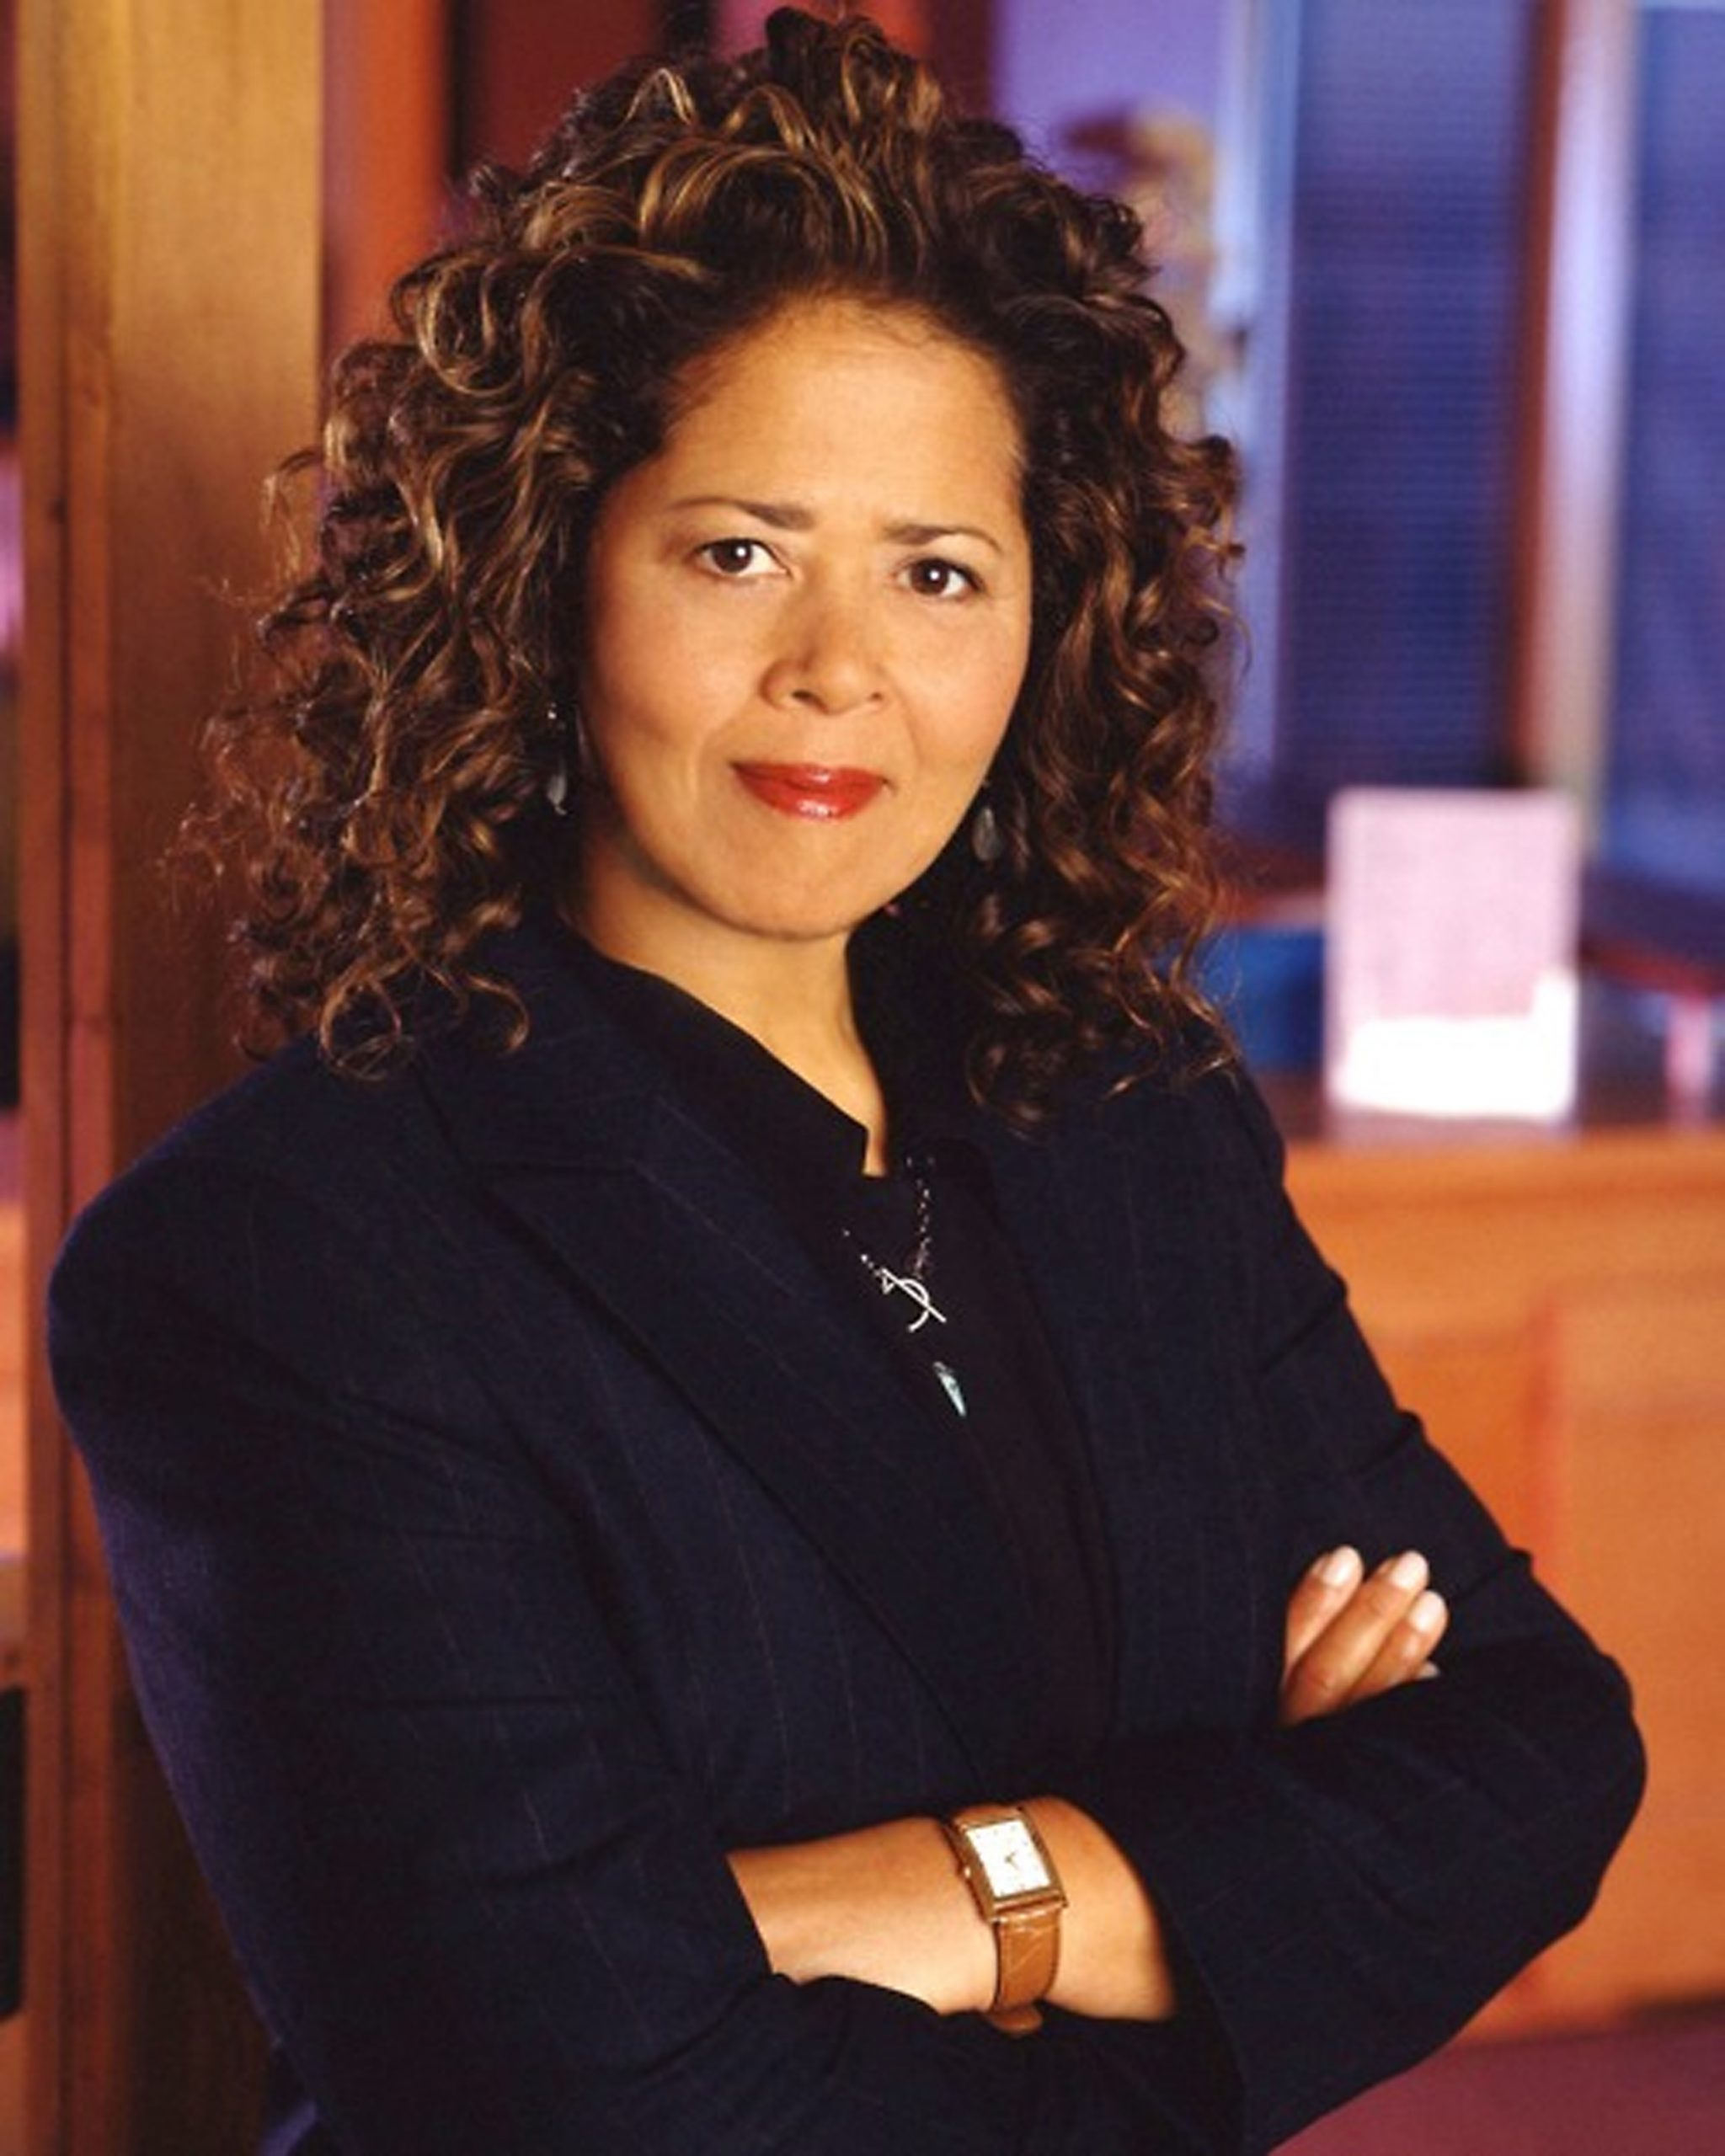 Anna Deavere Smith, actress and playwright, will give performance lecture on personal health care stories.